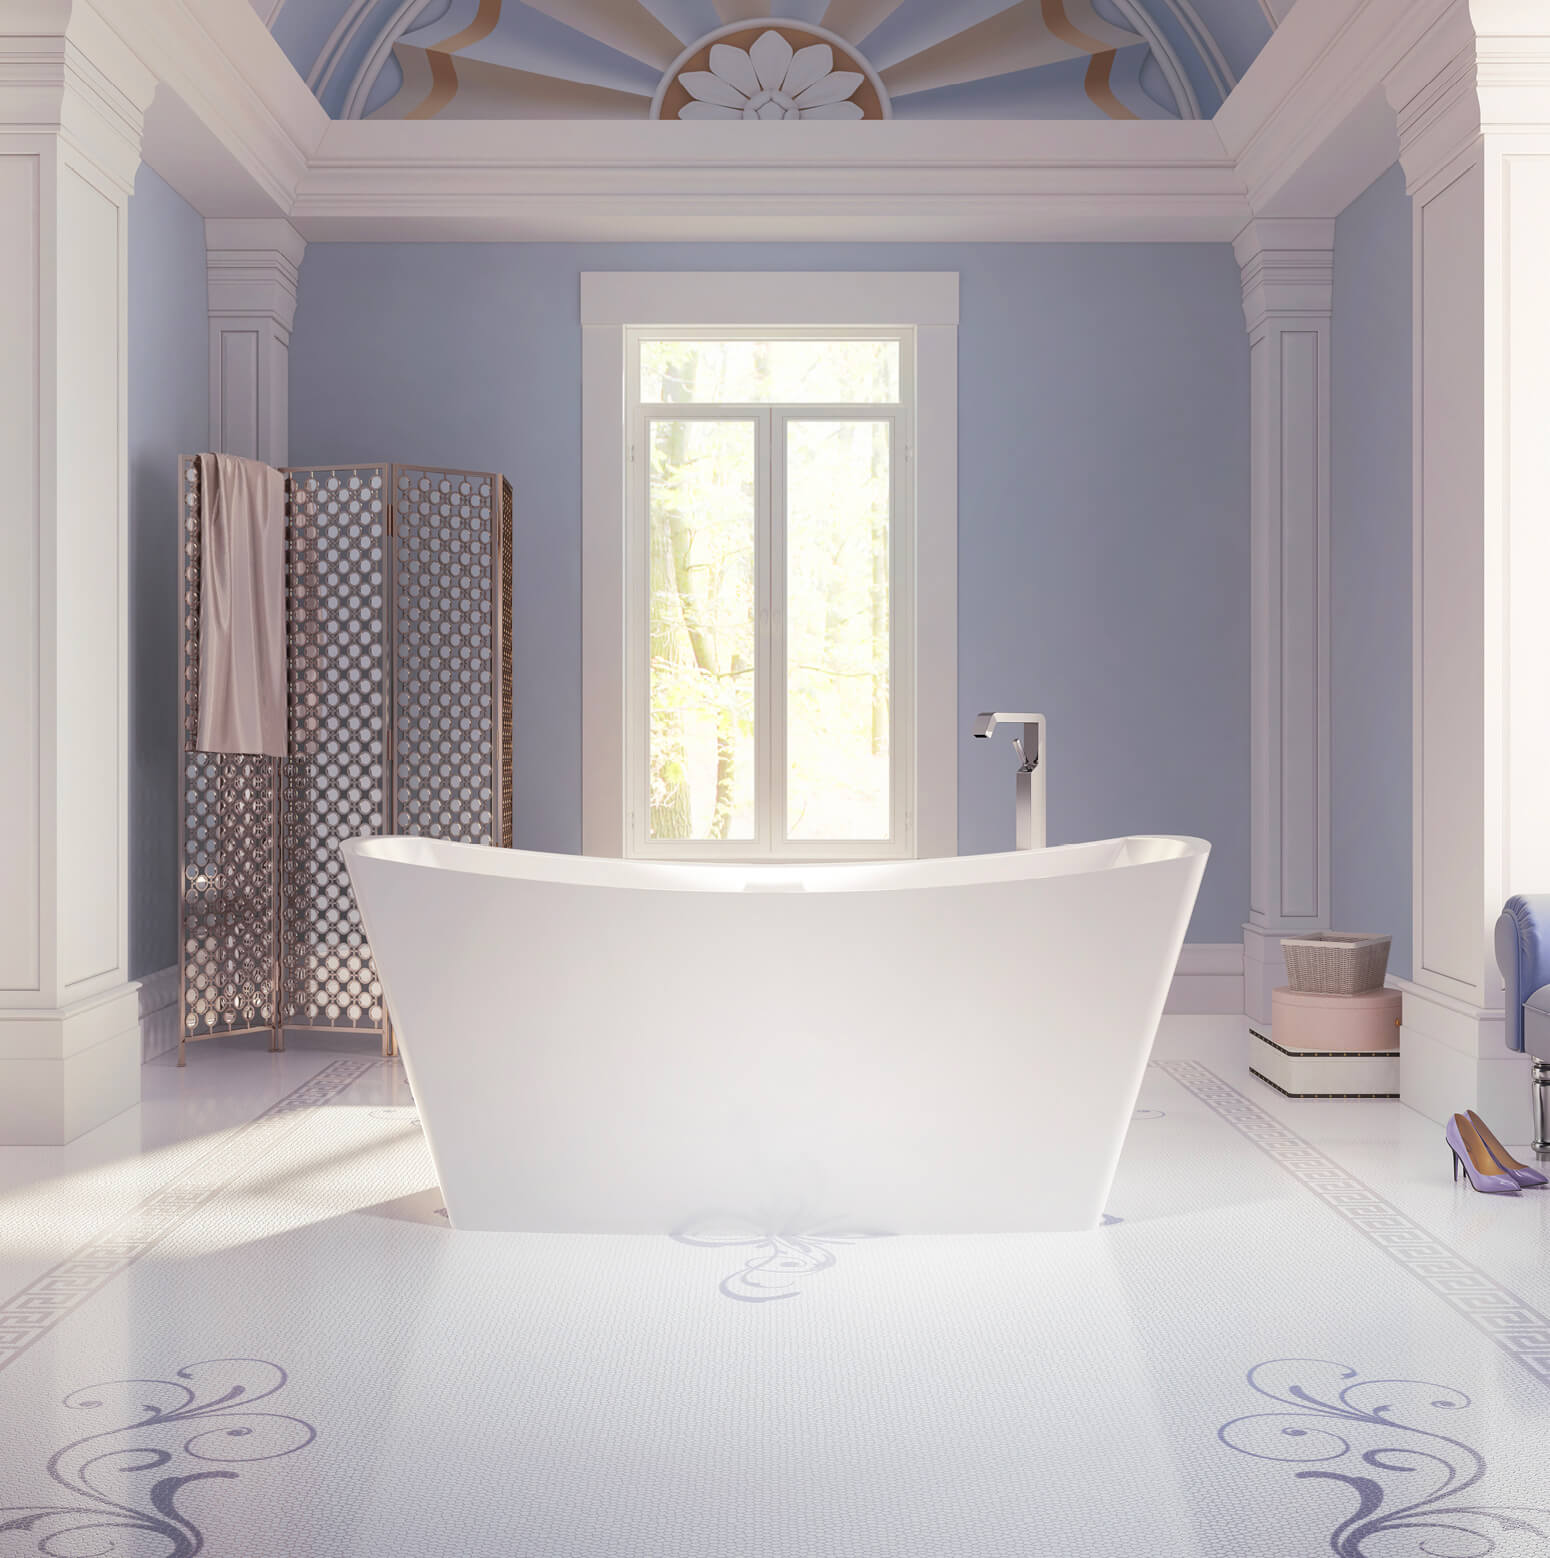 Bainultra Evanescence® collection freestanding alcove air jet bathtub for your modern bathroom